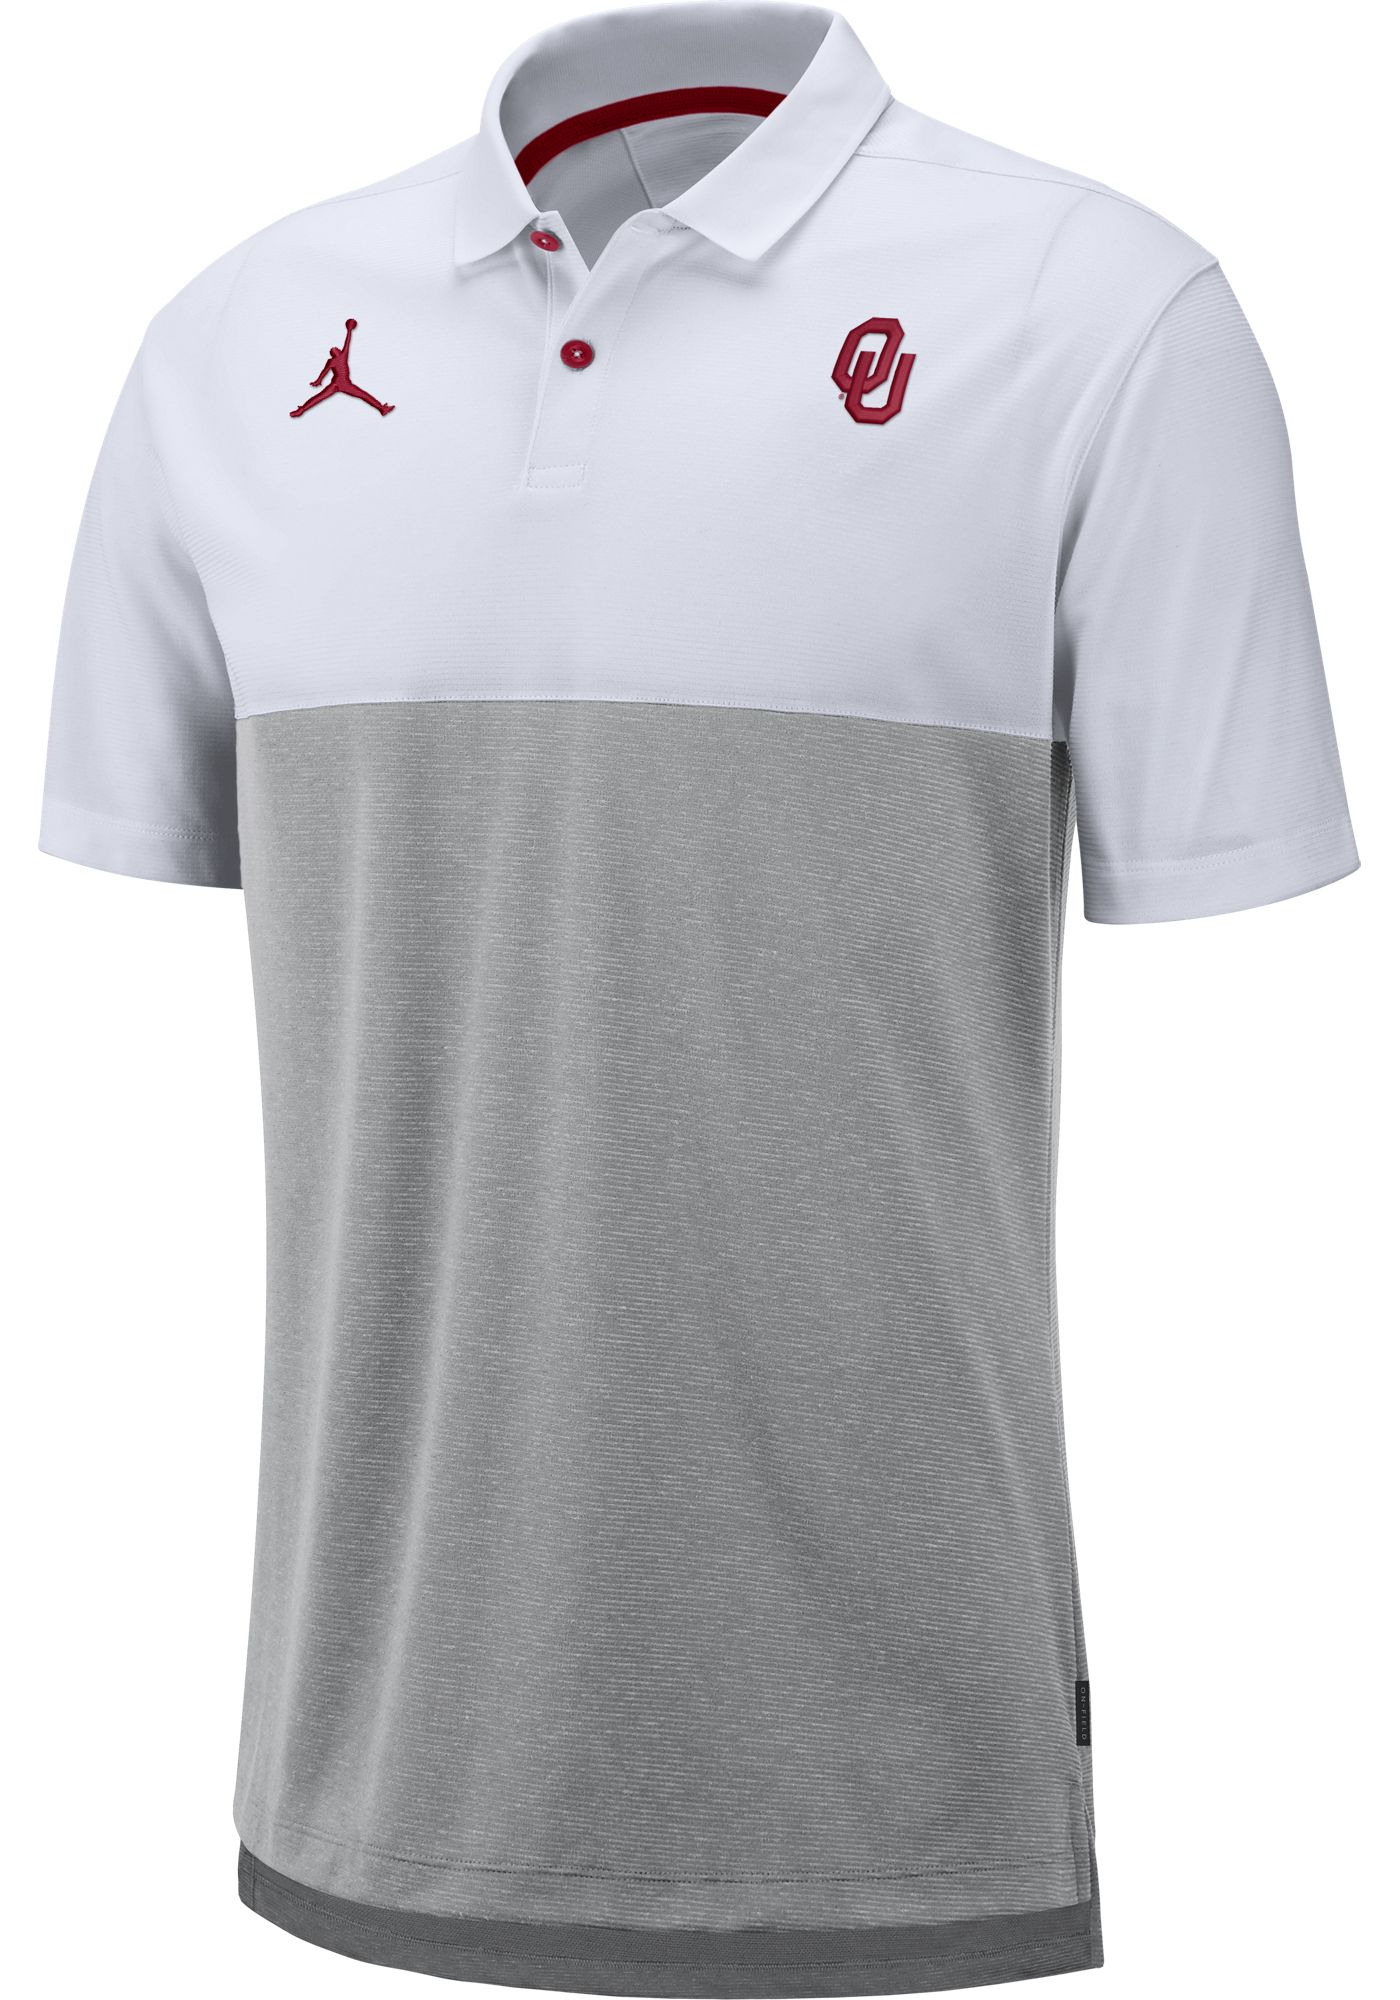 Jordan Men's Oklahoma Sooners White/Grey Dri-FIT Breathe Football Sideline Polo